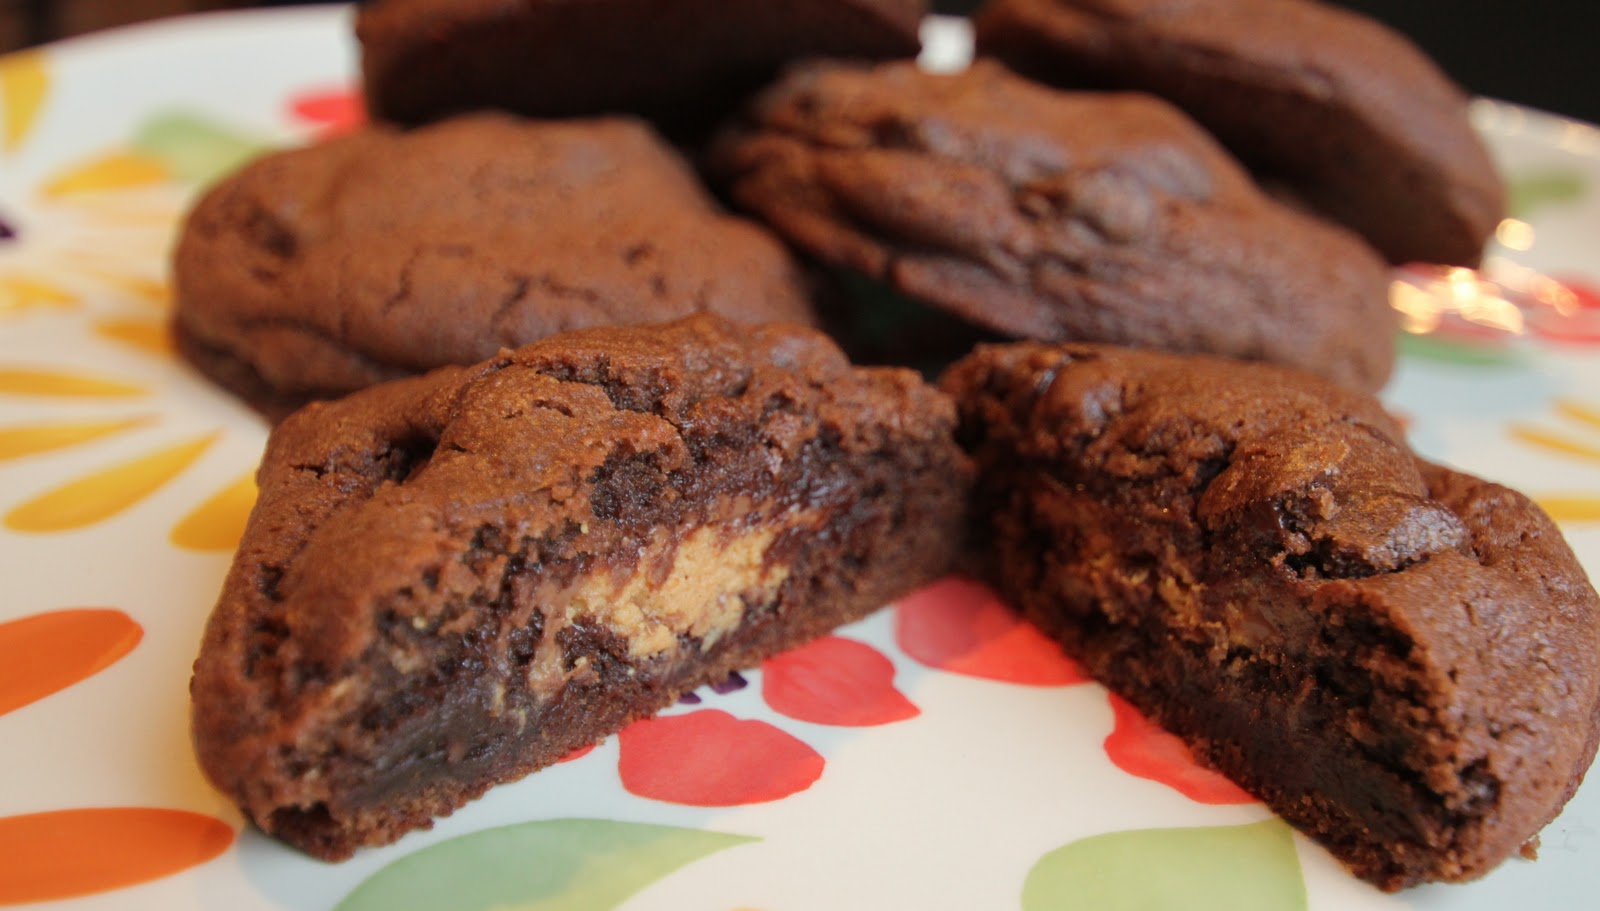 reese's peanut butter egg stuffed chocolate cookies